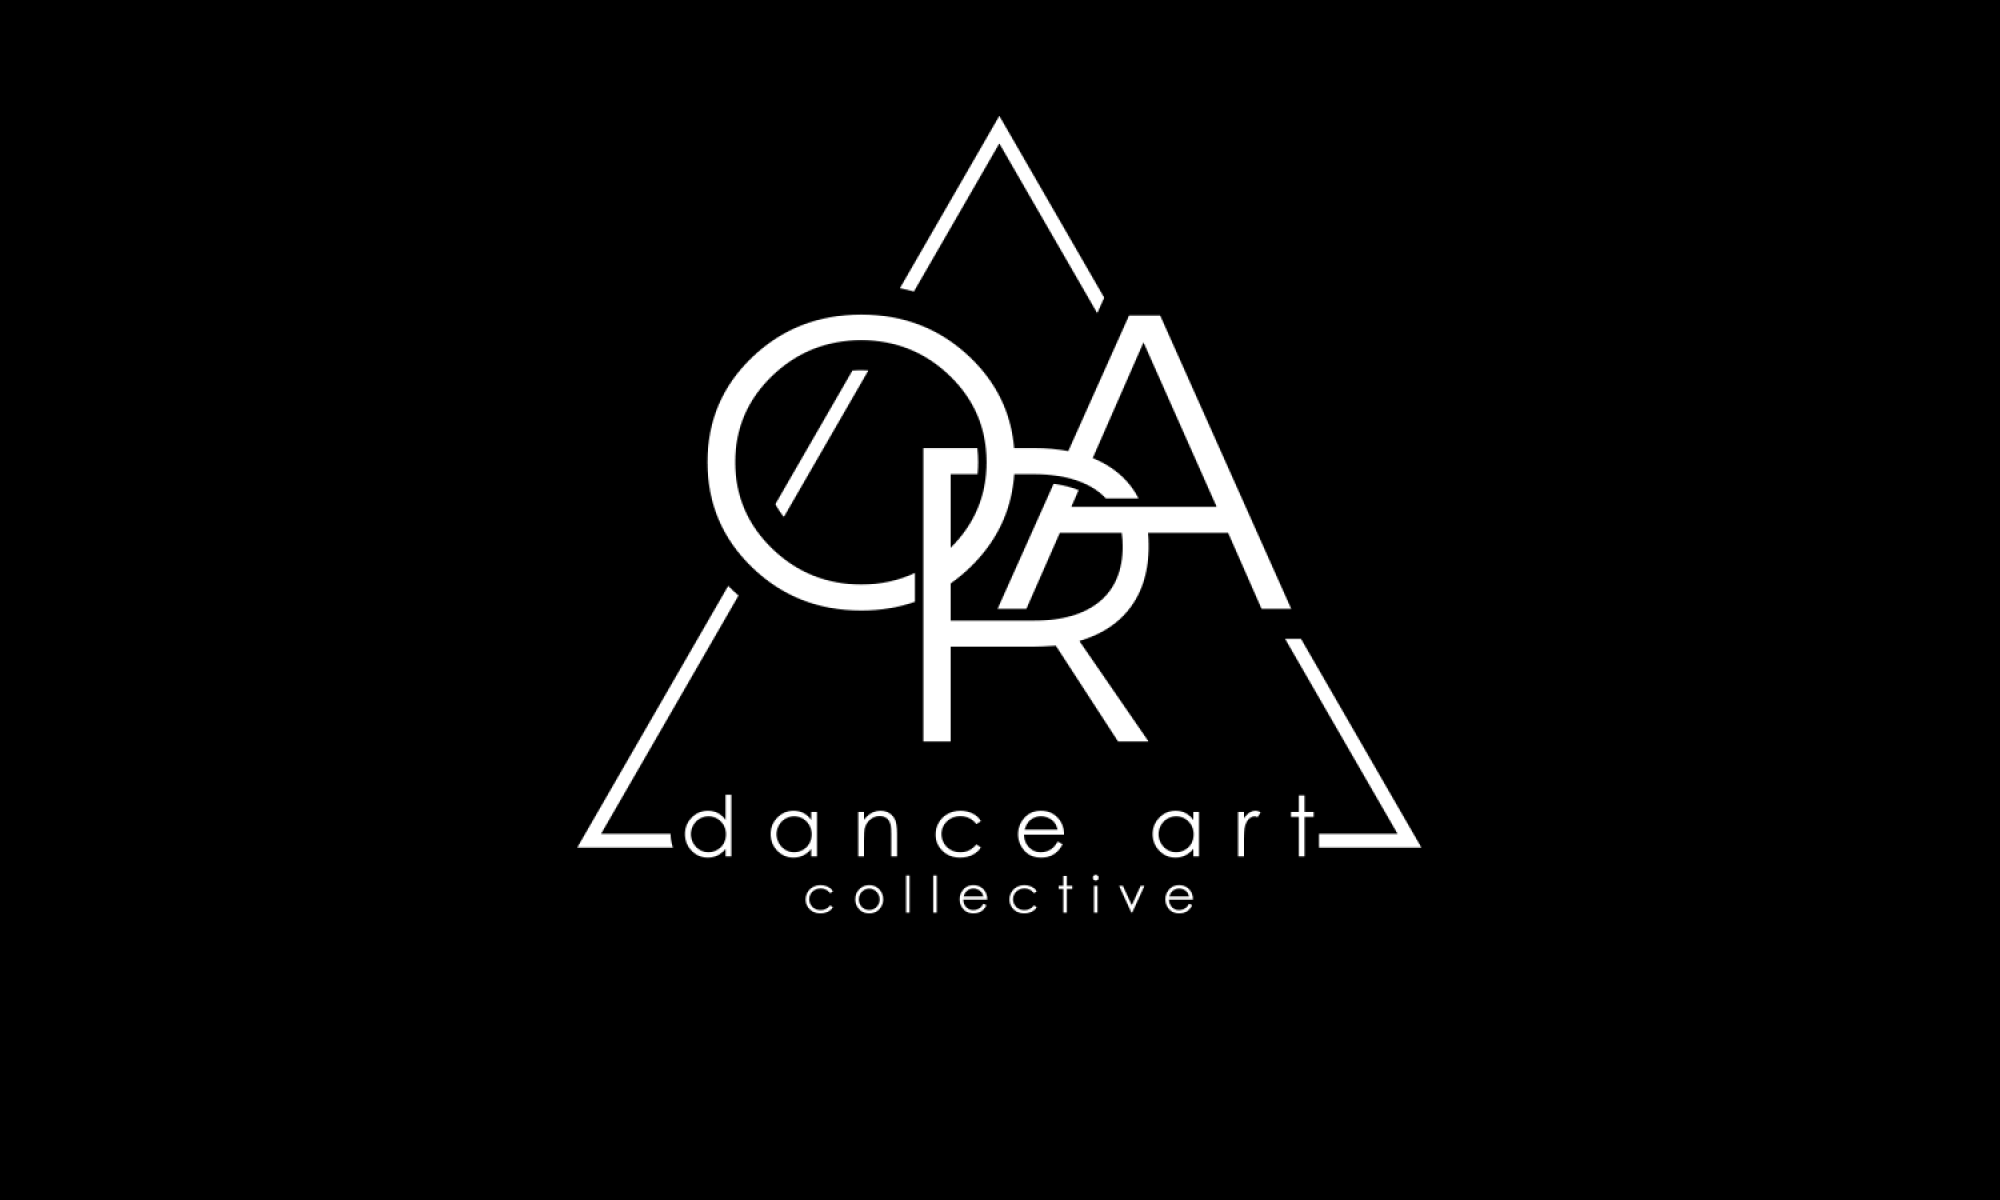 ORA collective